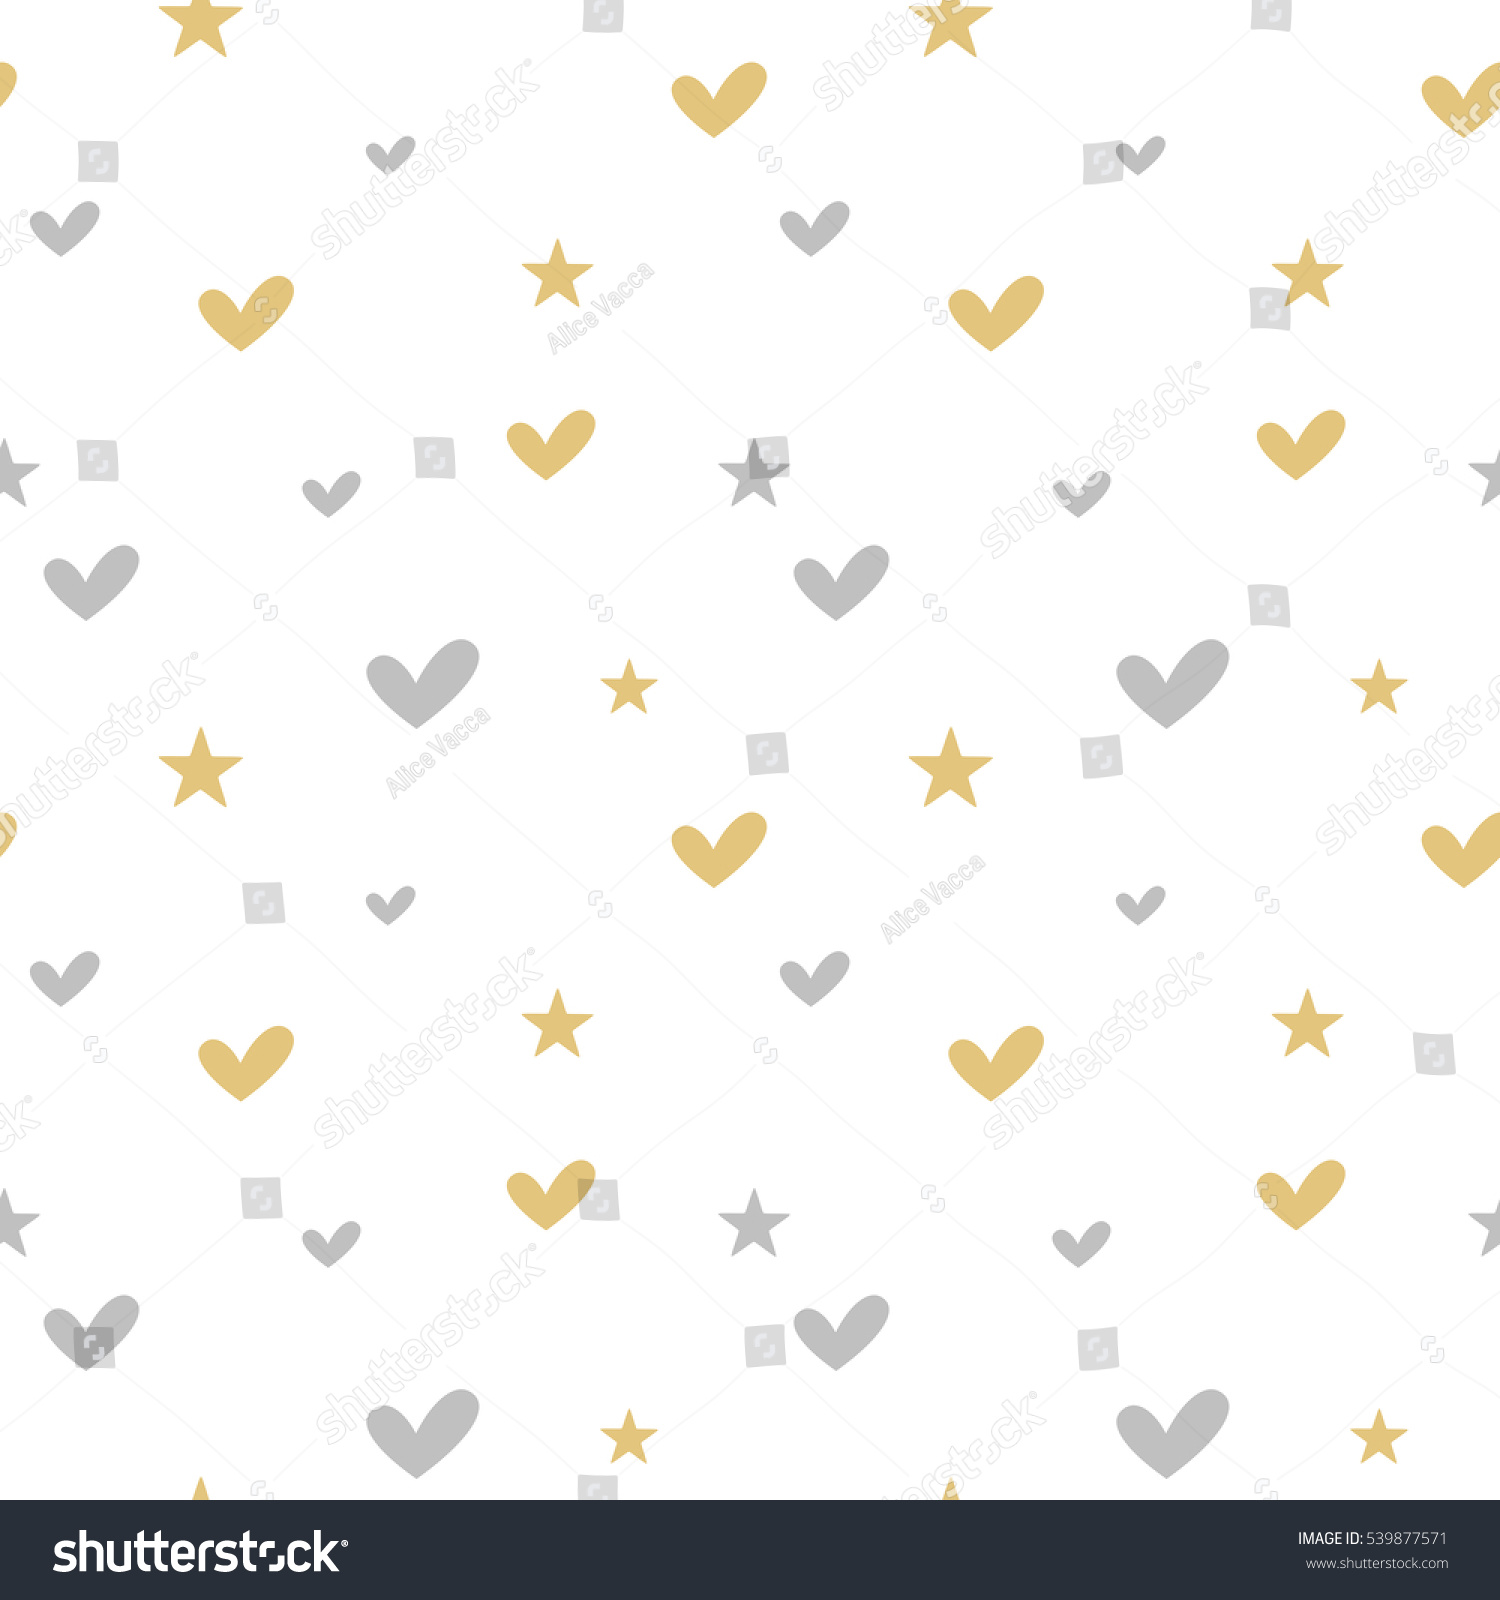 99  white valentines day background with glowing gold hearts royalty  amazon com bobee gold